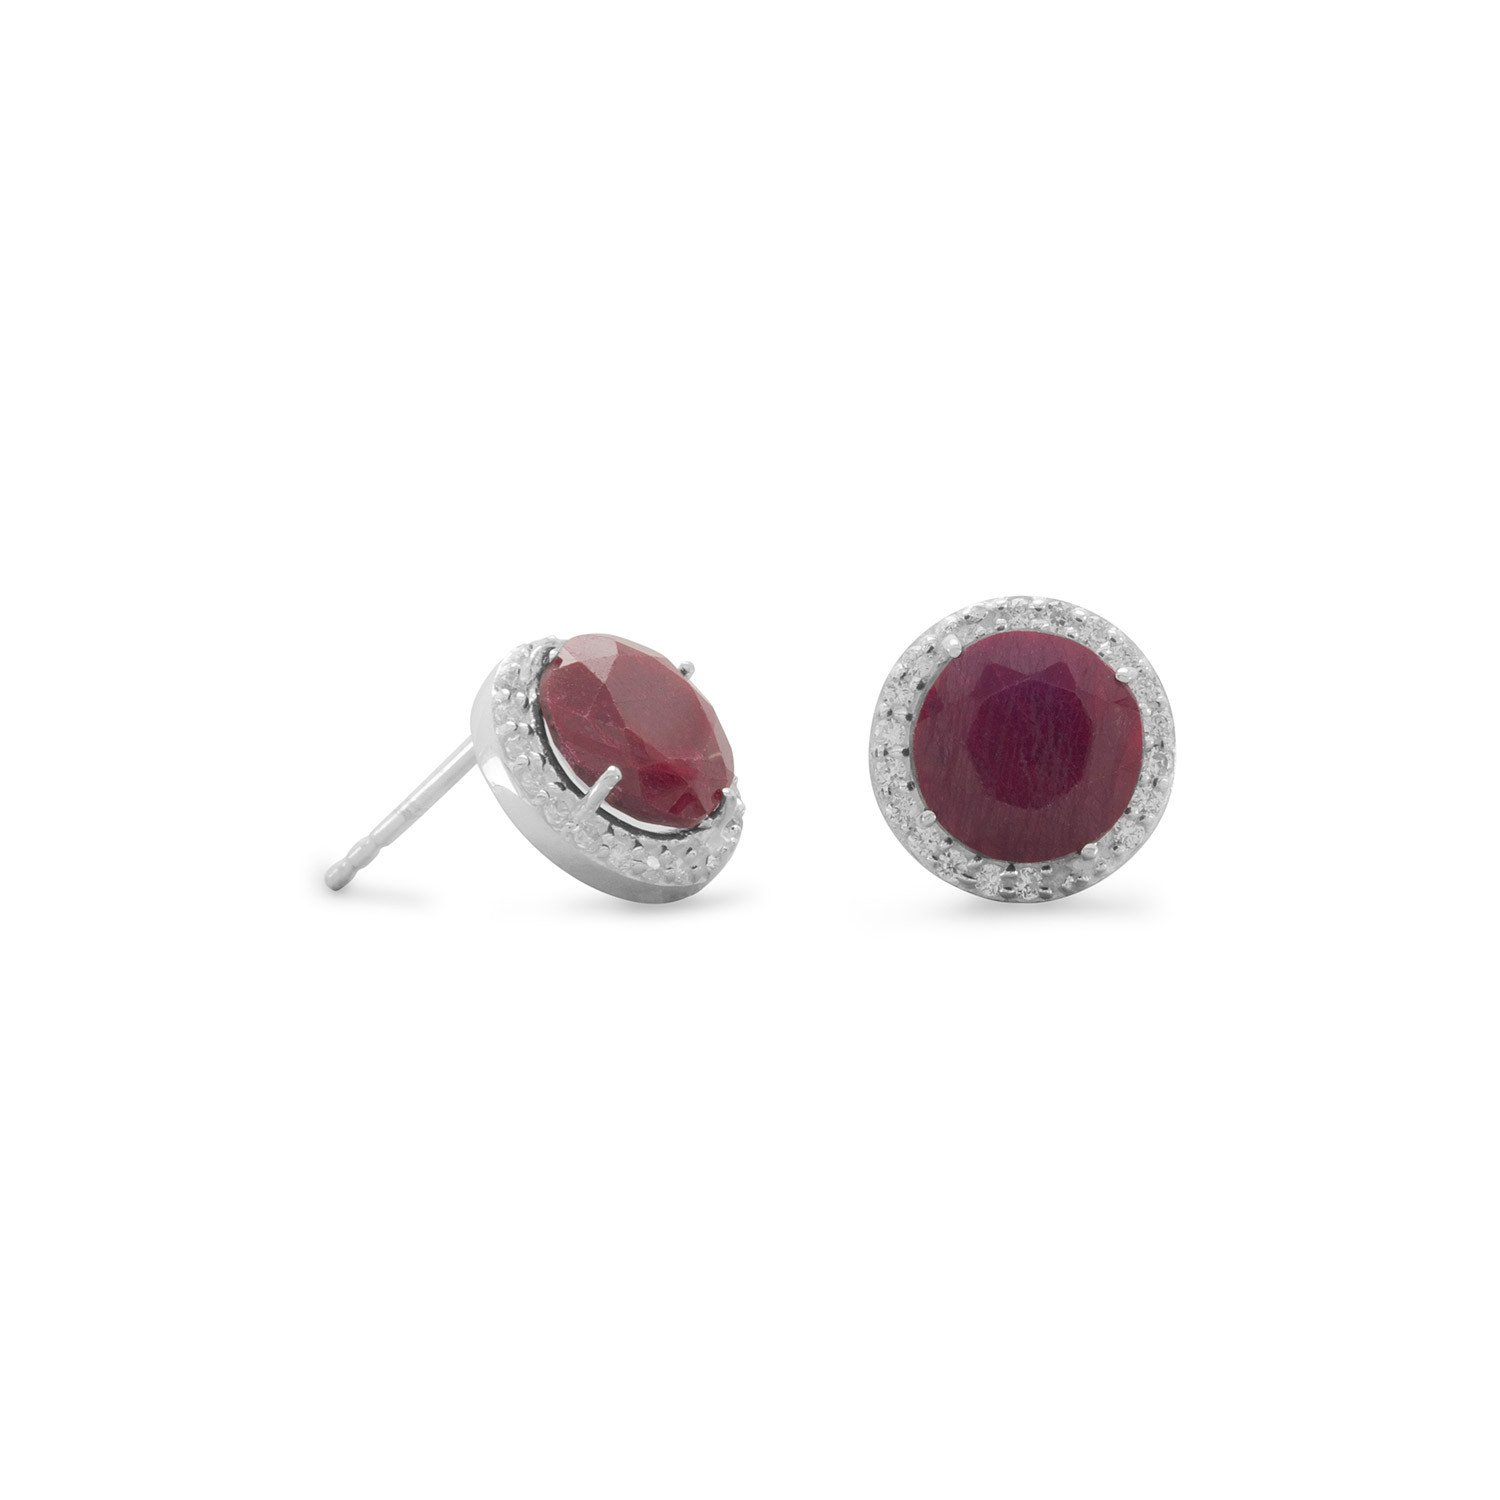 Corundum Stud Earrings with CZ Edge